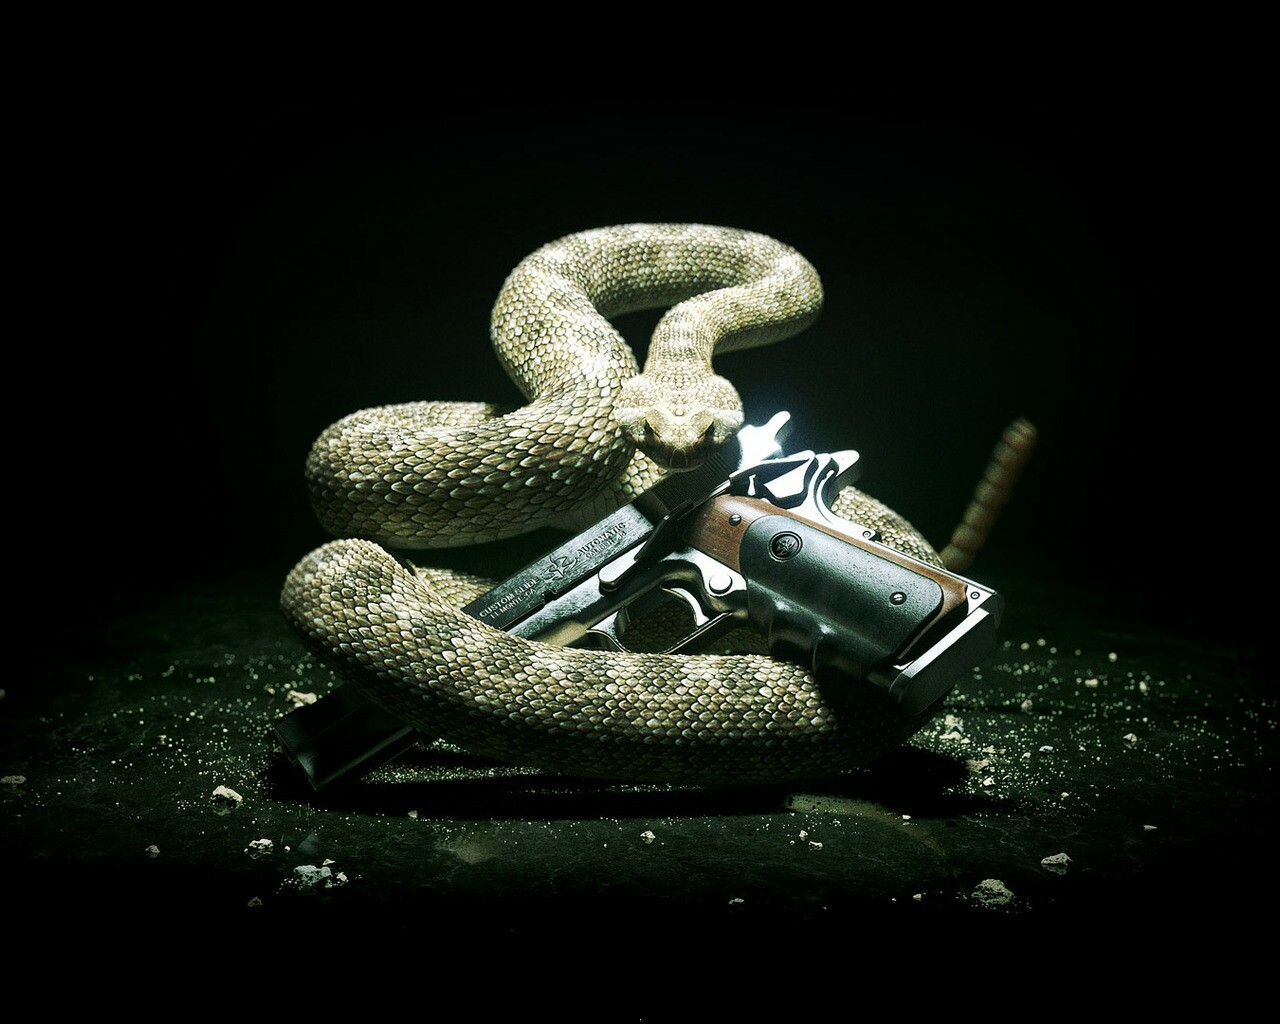 Creative_Wallpaper_The_snake_and_the_gun_030336_.jpg